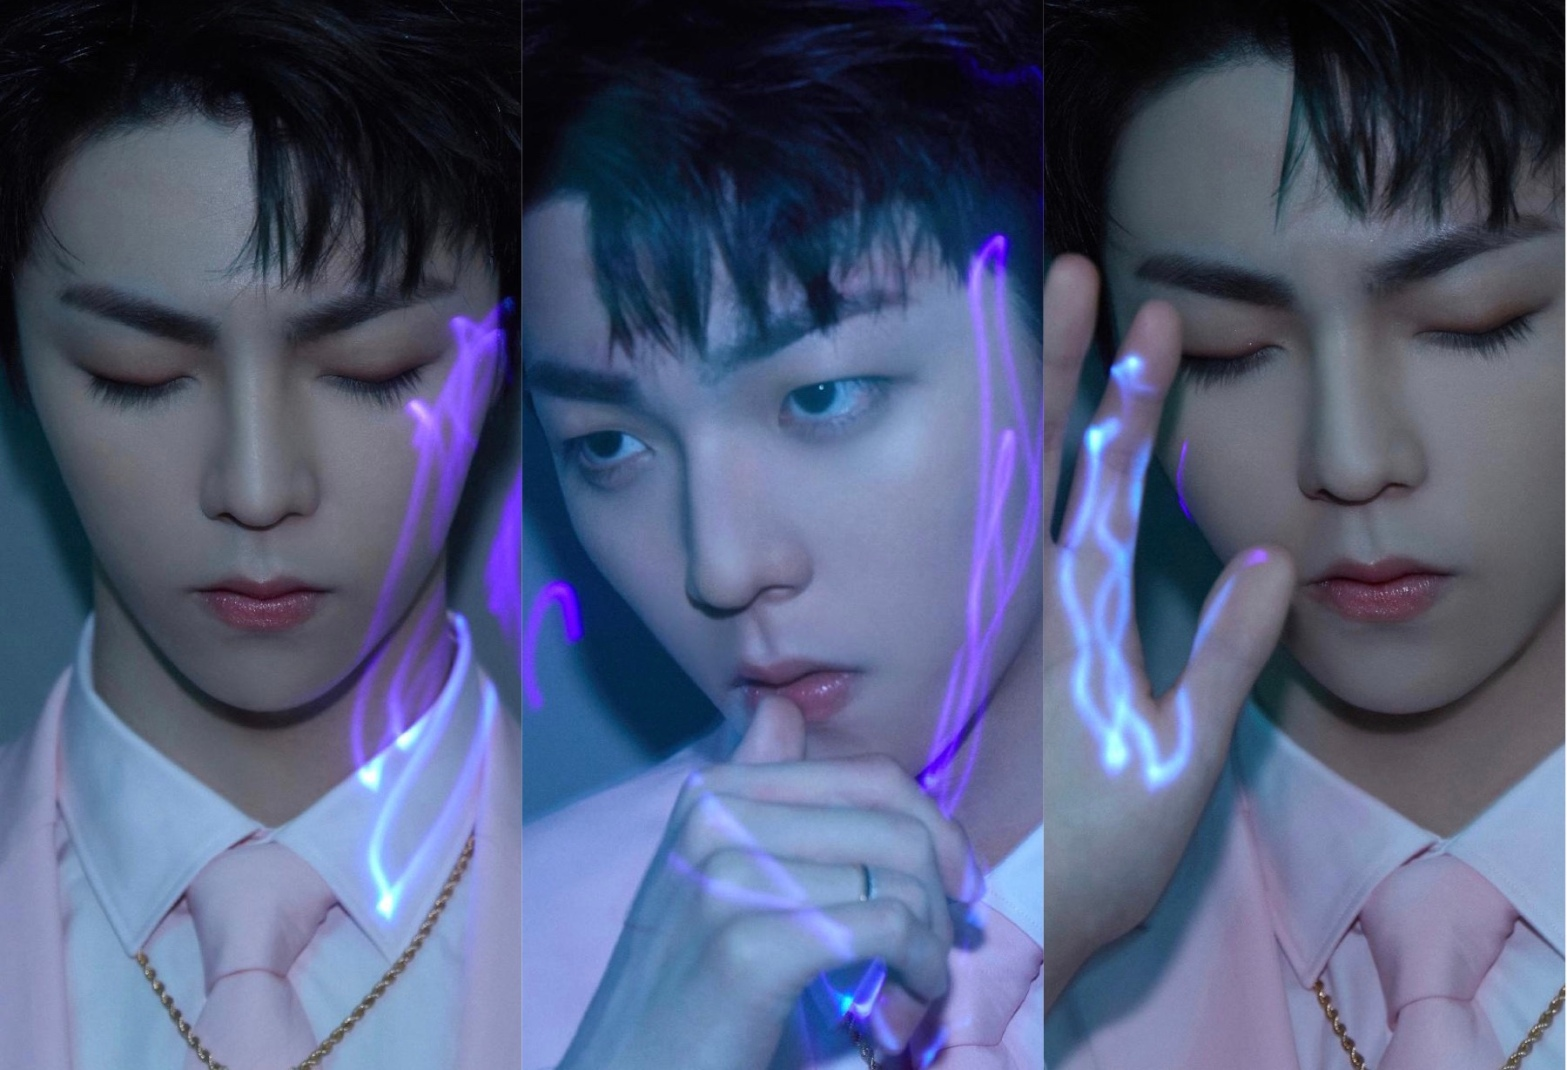 Chen Linong, concept photos for 1st full album 格格不入